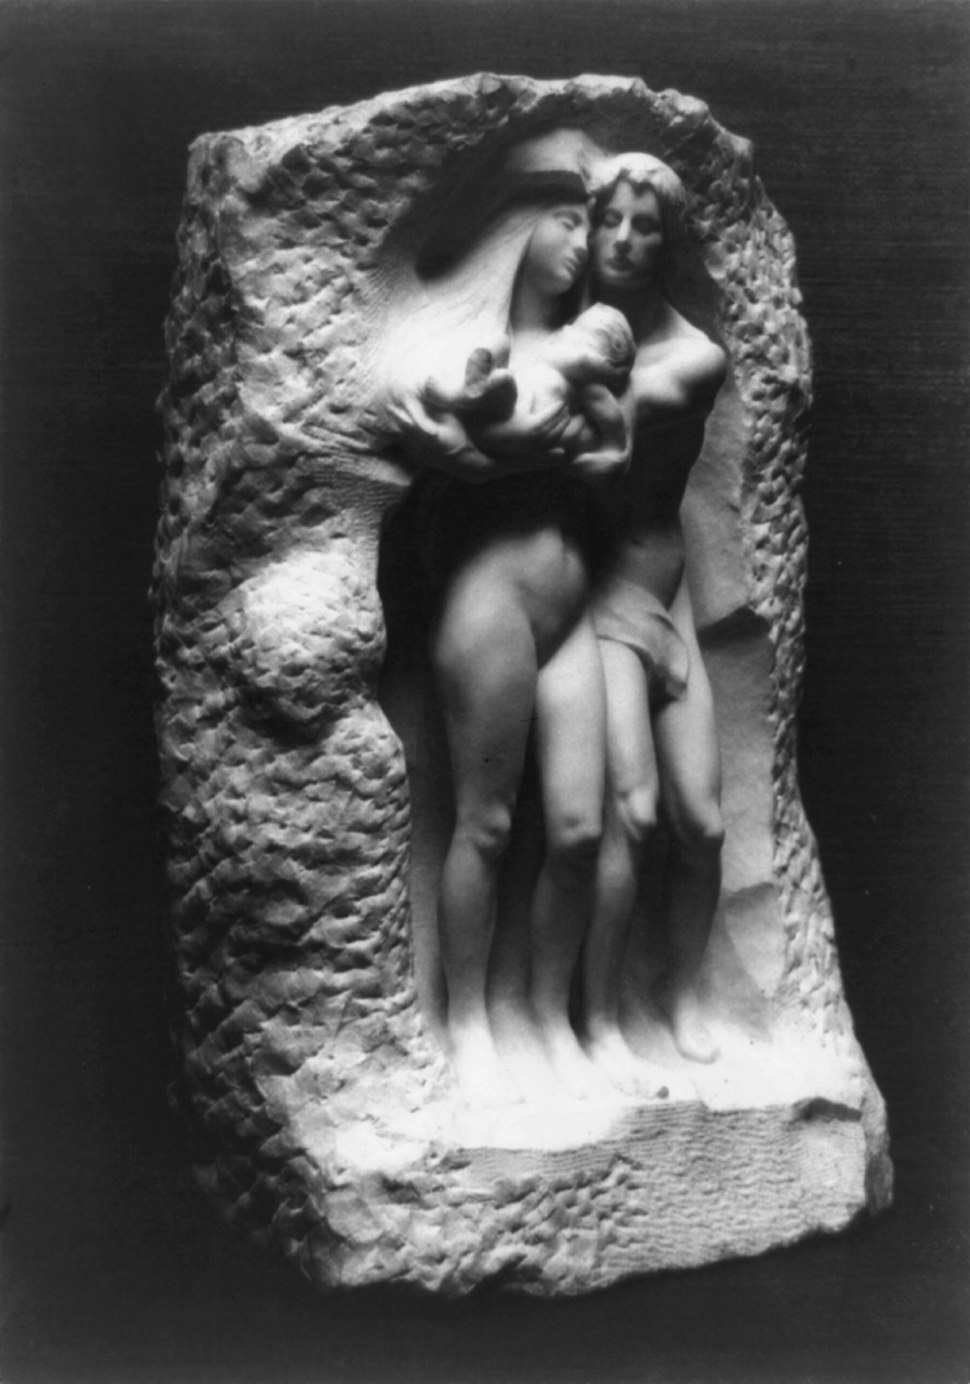 George Grey Barnard, The Birth, marble, exhibited at the Armory Show, 1913